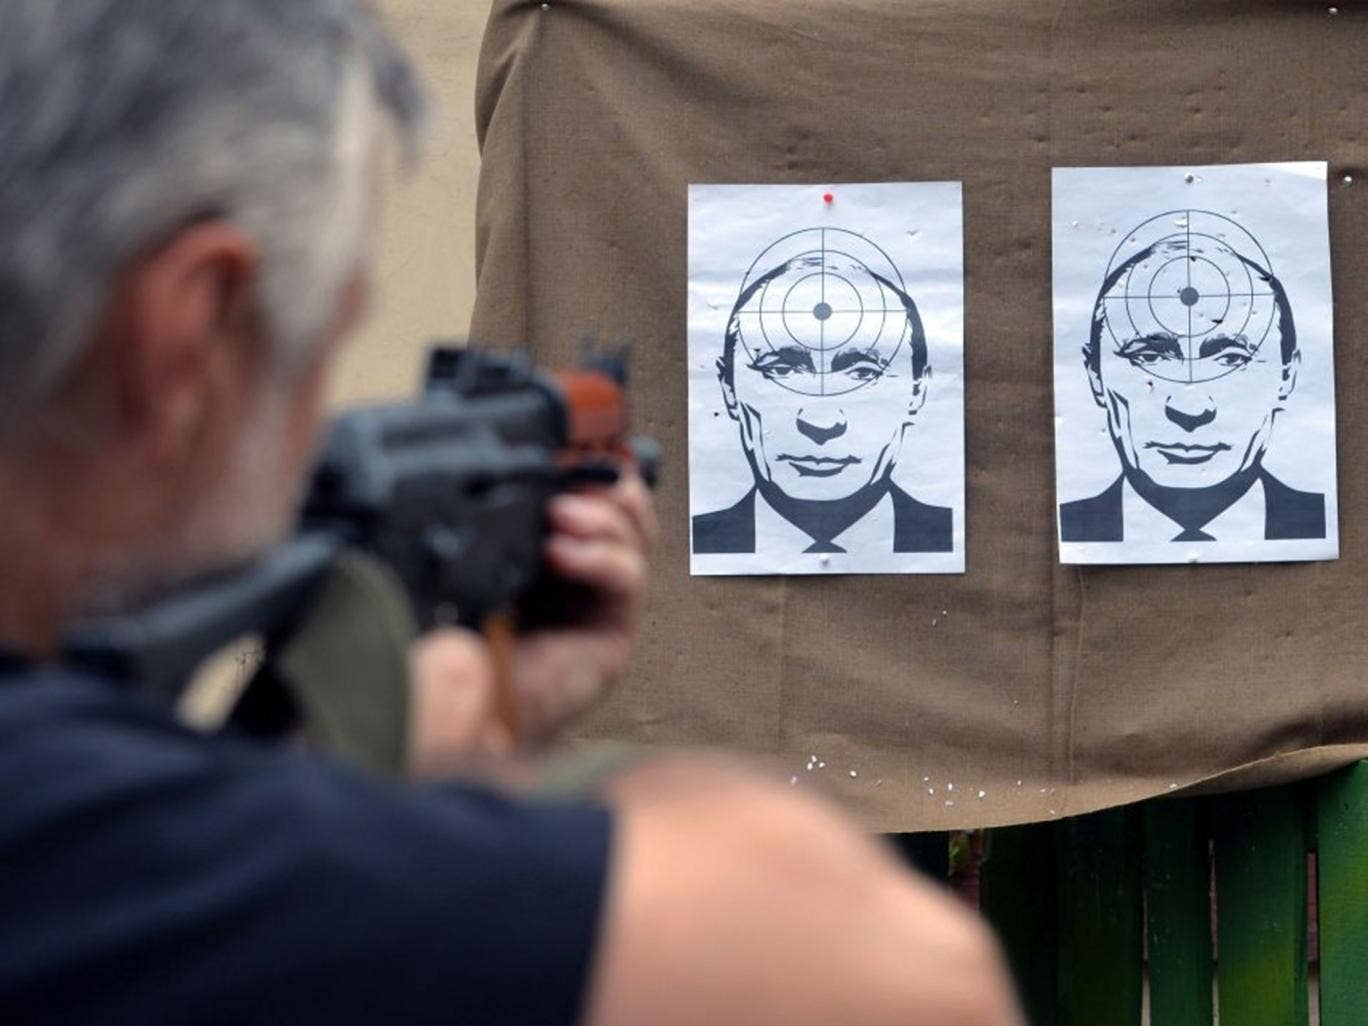 A man shoots at targets depicting a portrait of Russian President Vladimir Putin, in a shooting range in the center of the western Ukrainian city of Lviv